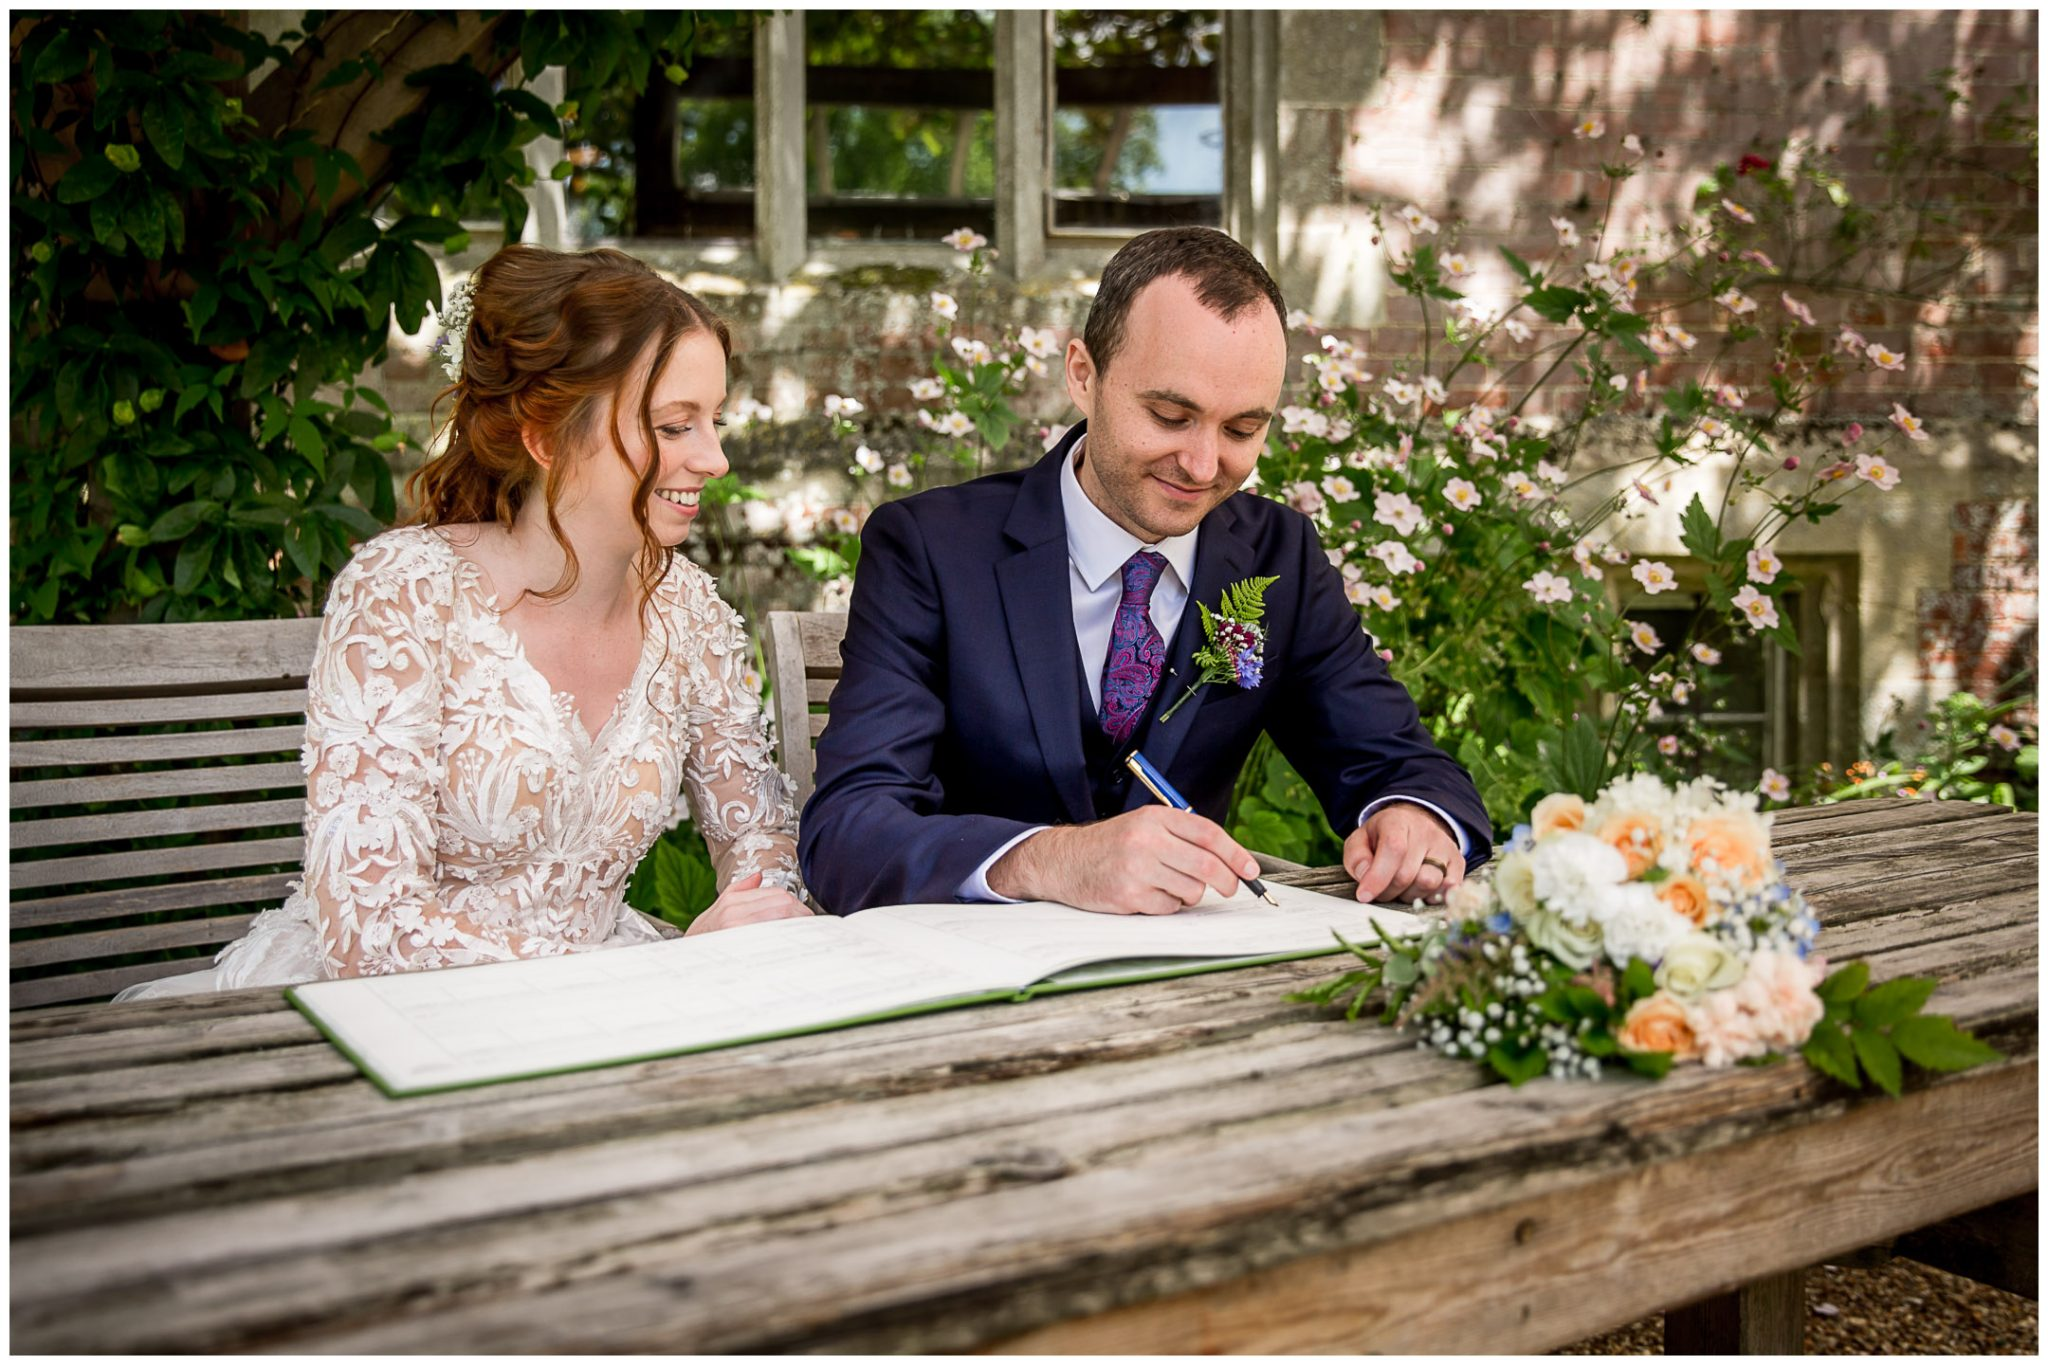 The couple signing the register